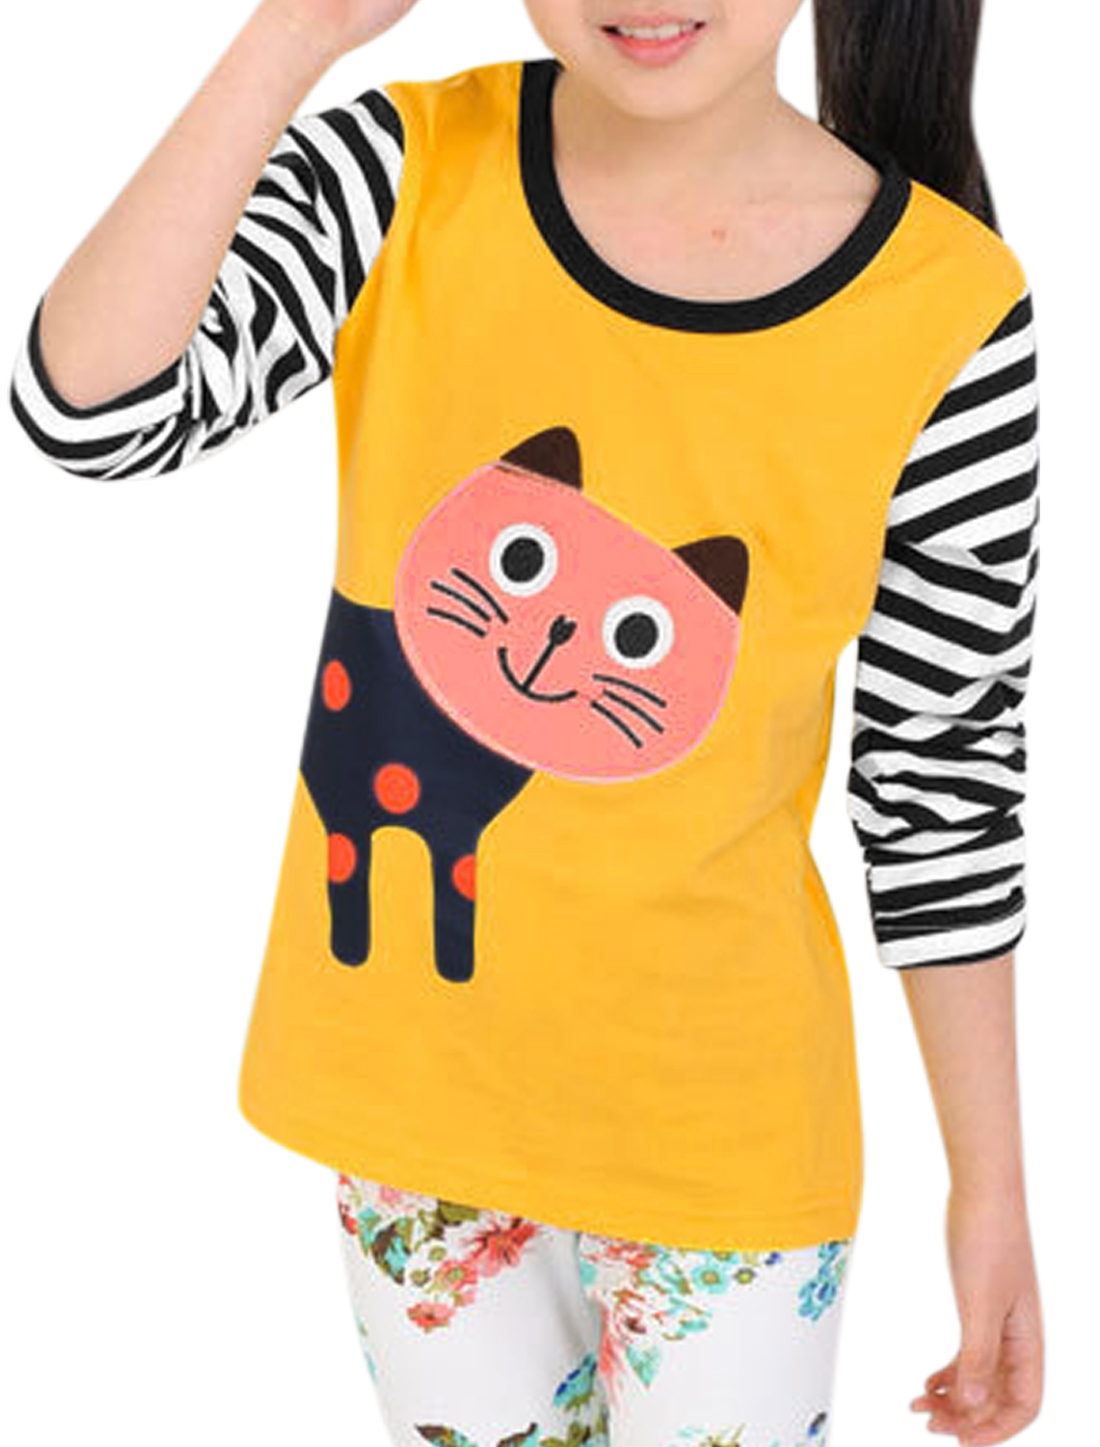 Girls Stripes Cartoon Cat Applique Casual Tee Yellow 6